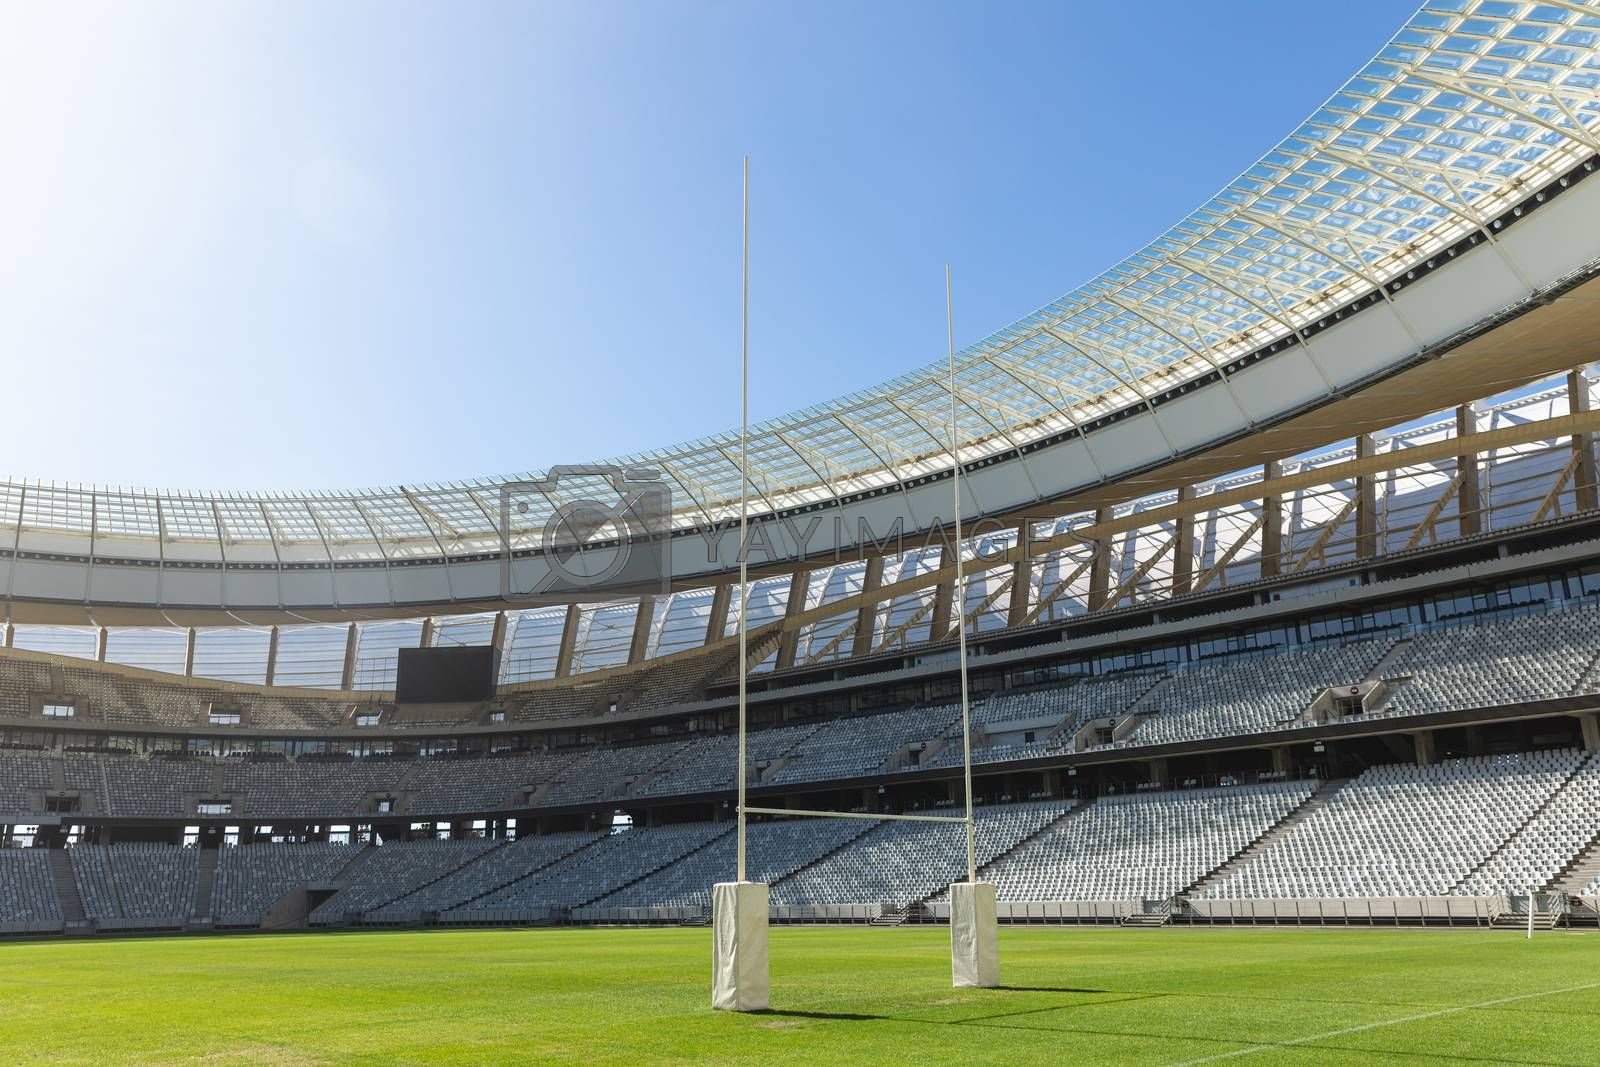 Rugby stadium on a sunny day by Wavebreakmedia